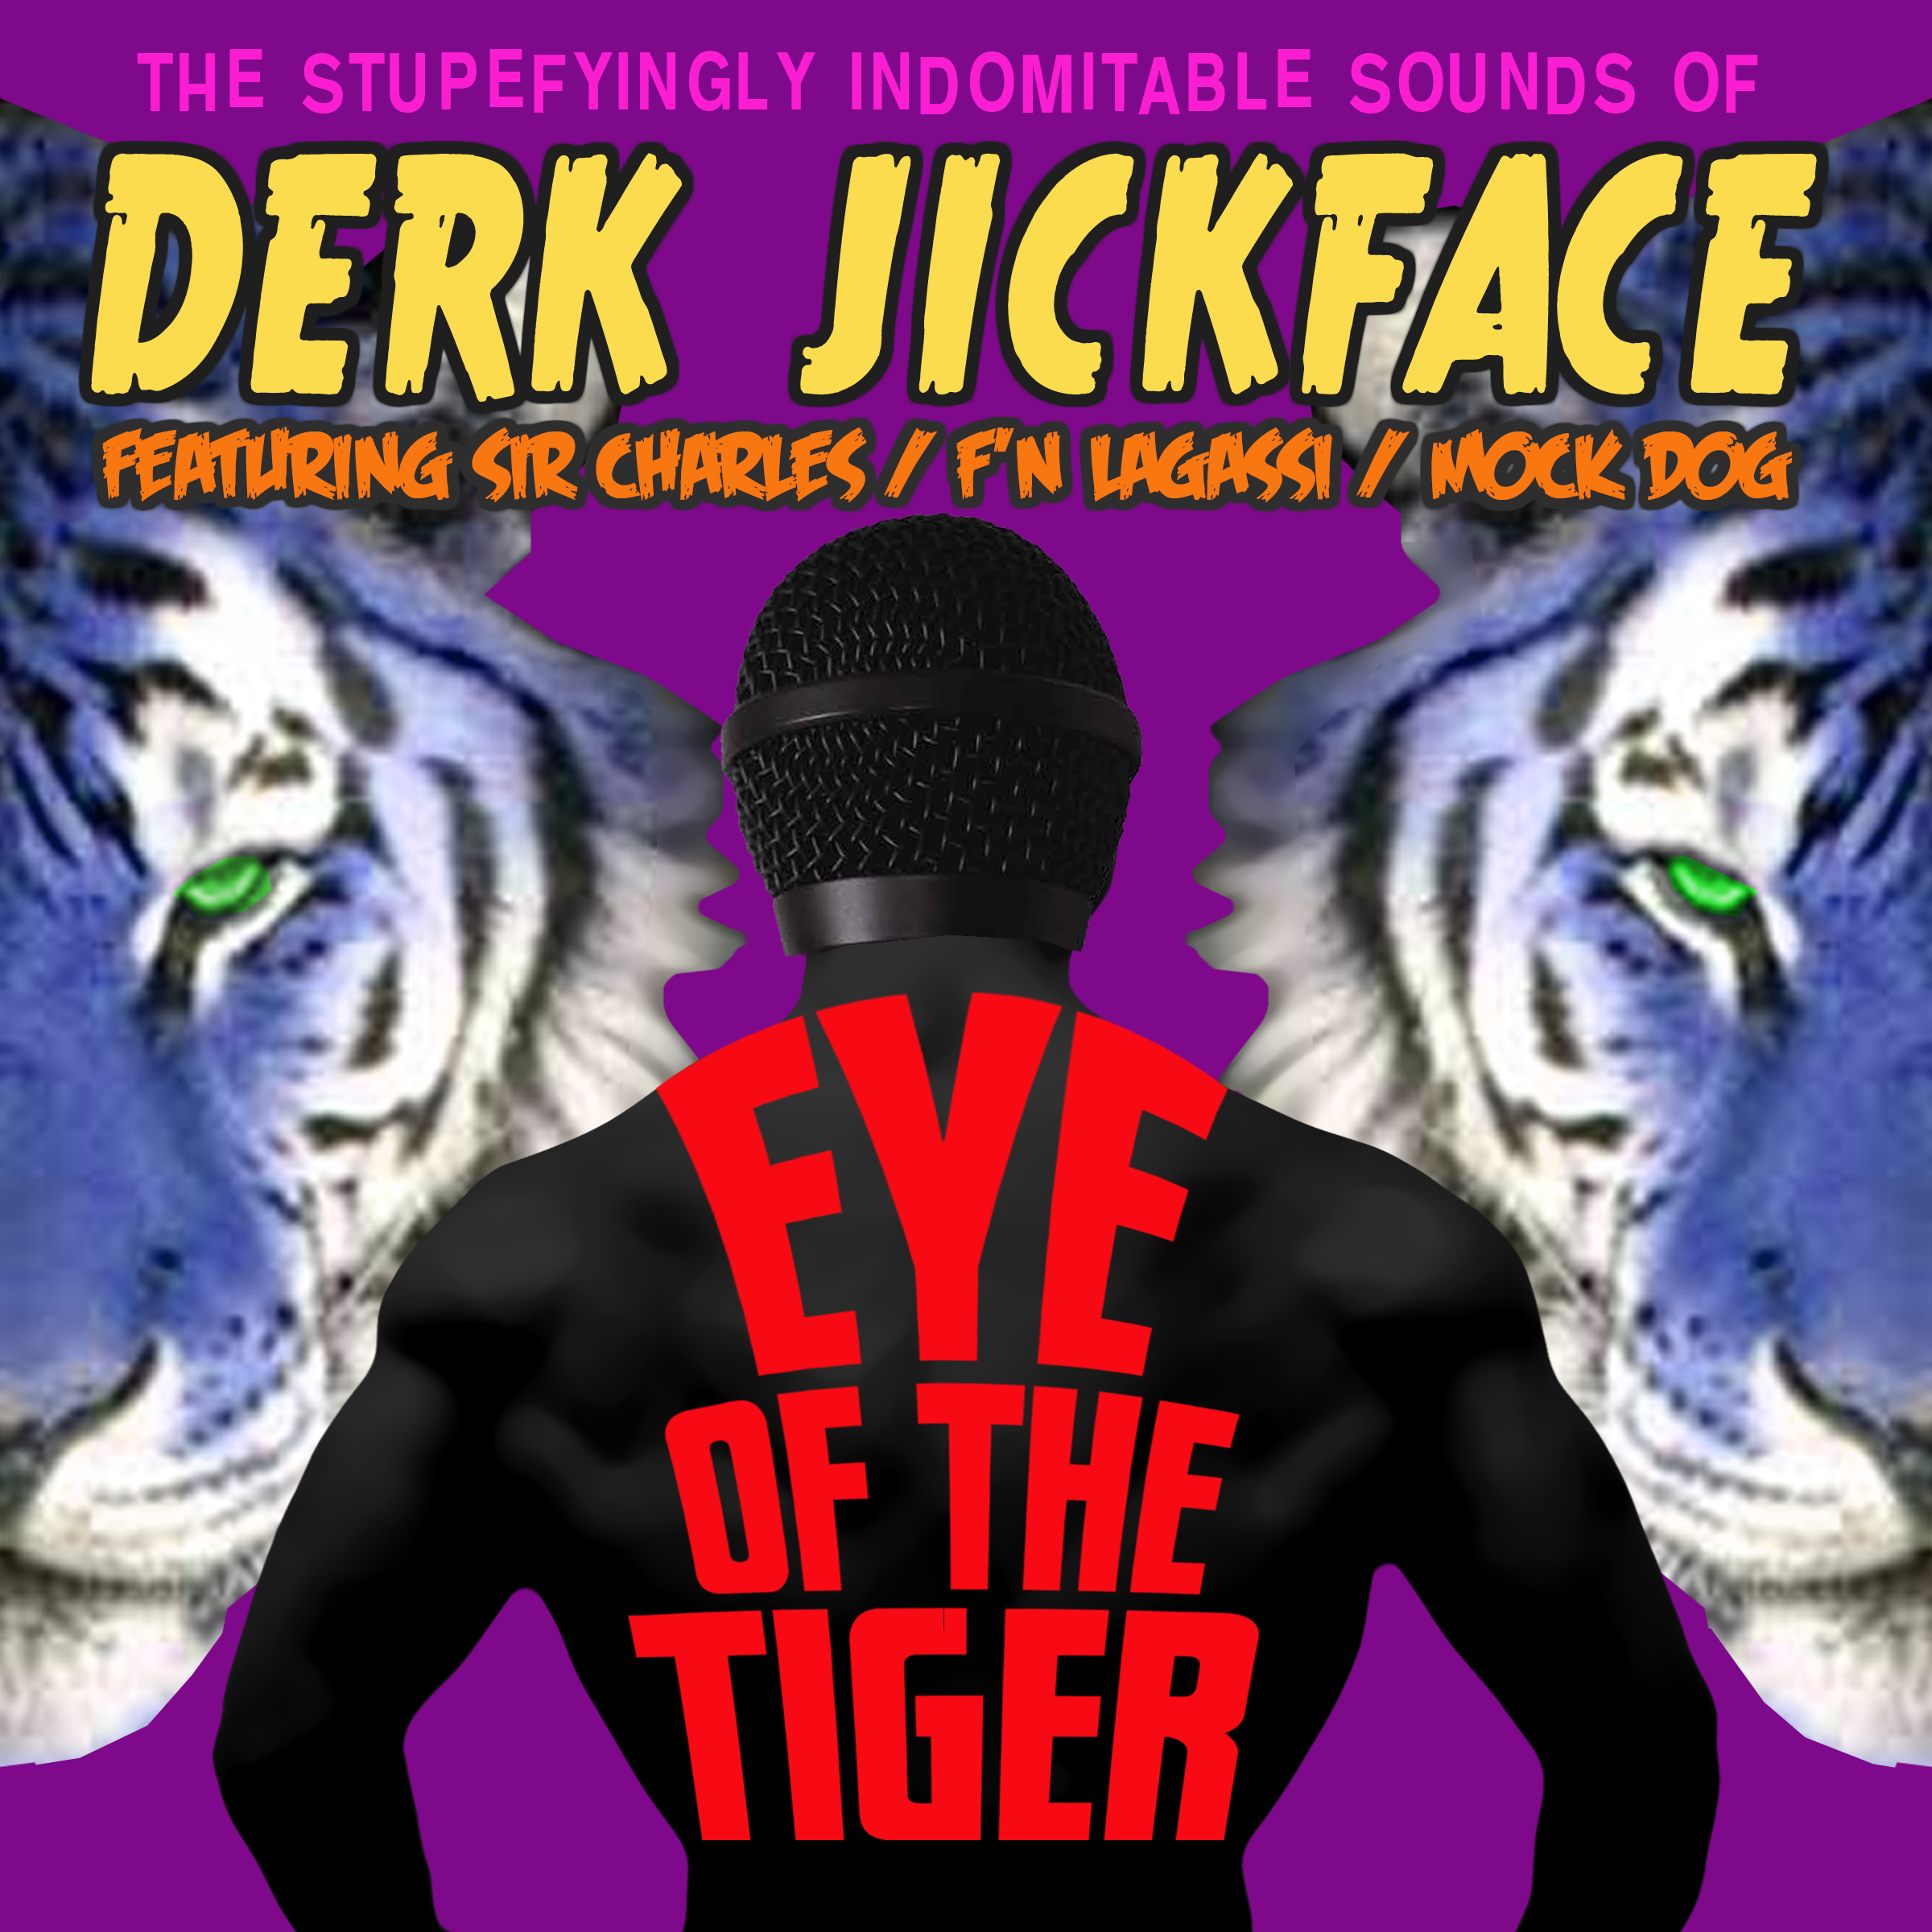 Eye Of The Tiger Album Art